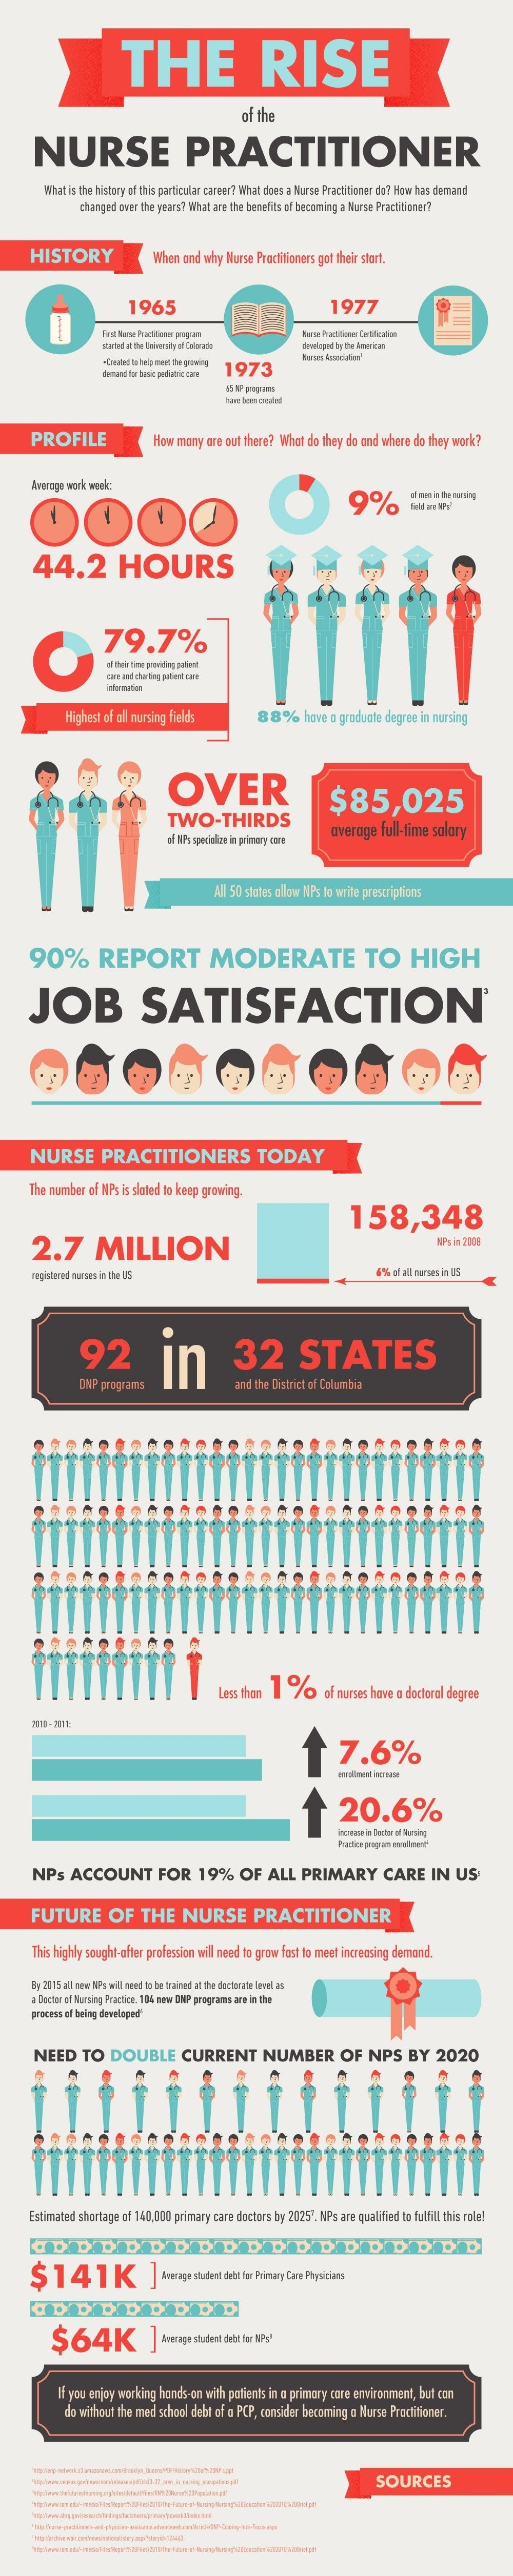 The Rise of the Nurse Practitioner #infographic